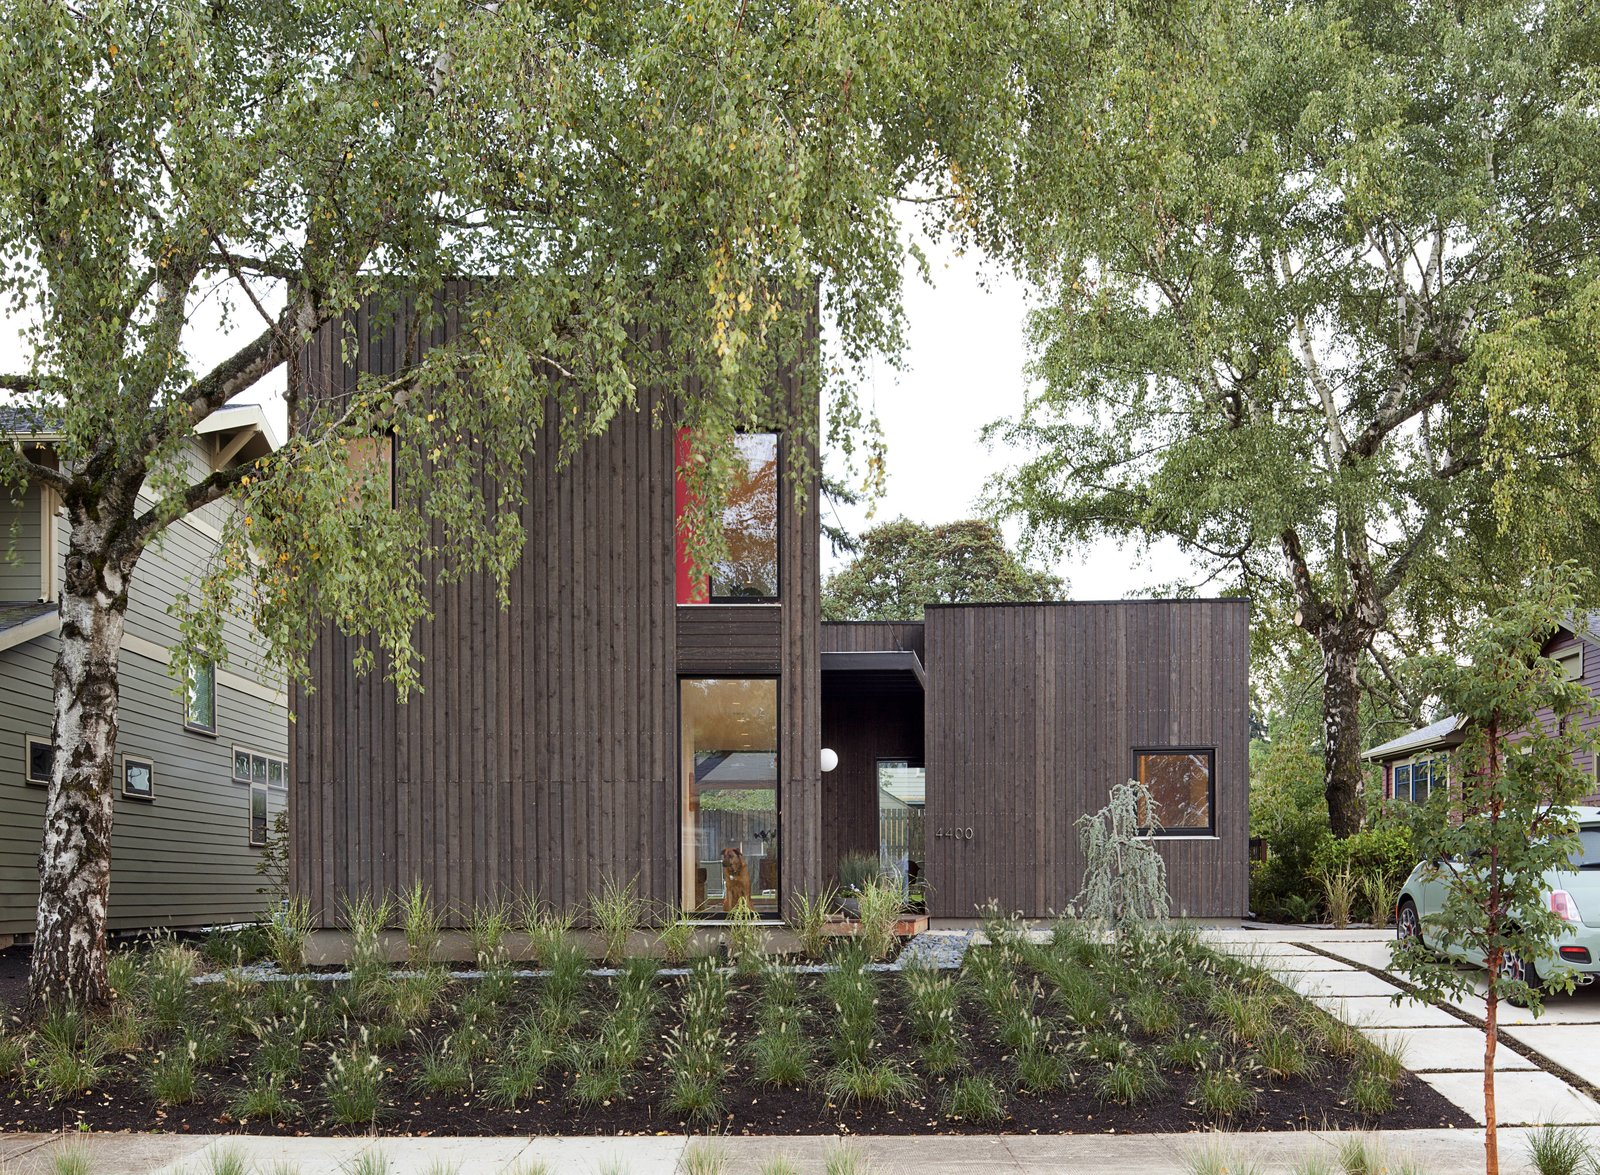 Exterior, House Building Type, Flat RoofLine, and Wood Siding Material While the home's simple, boxy forms starkly contrast with surrounding residences, its compact shape and modest scale help it fit into the traditional neighborhood without calling attention to itself. The house was built around a large birch tree, with dwarf fountain grass and porcupine grass planted in front. A weeping blue atlas cedar provides a focal point near the front door.  Super-Insulated Houses That Stand Up to Winter's Chill by Heather Corcoran from A Green Portland Home Built to Passive House Standards